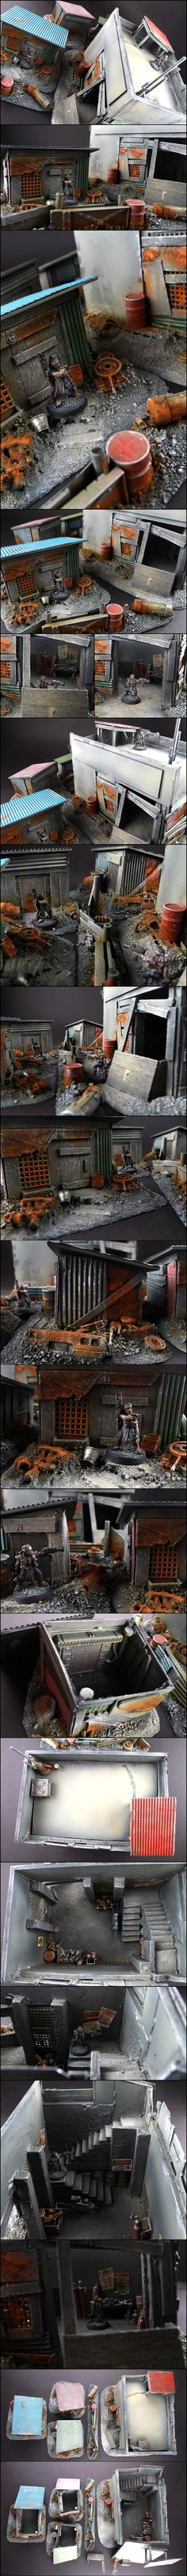 1000 Images About Garages Scale Minis On Pinterest